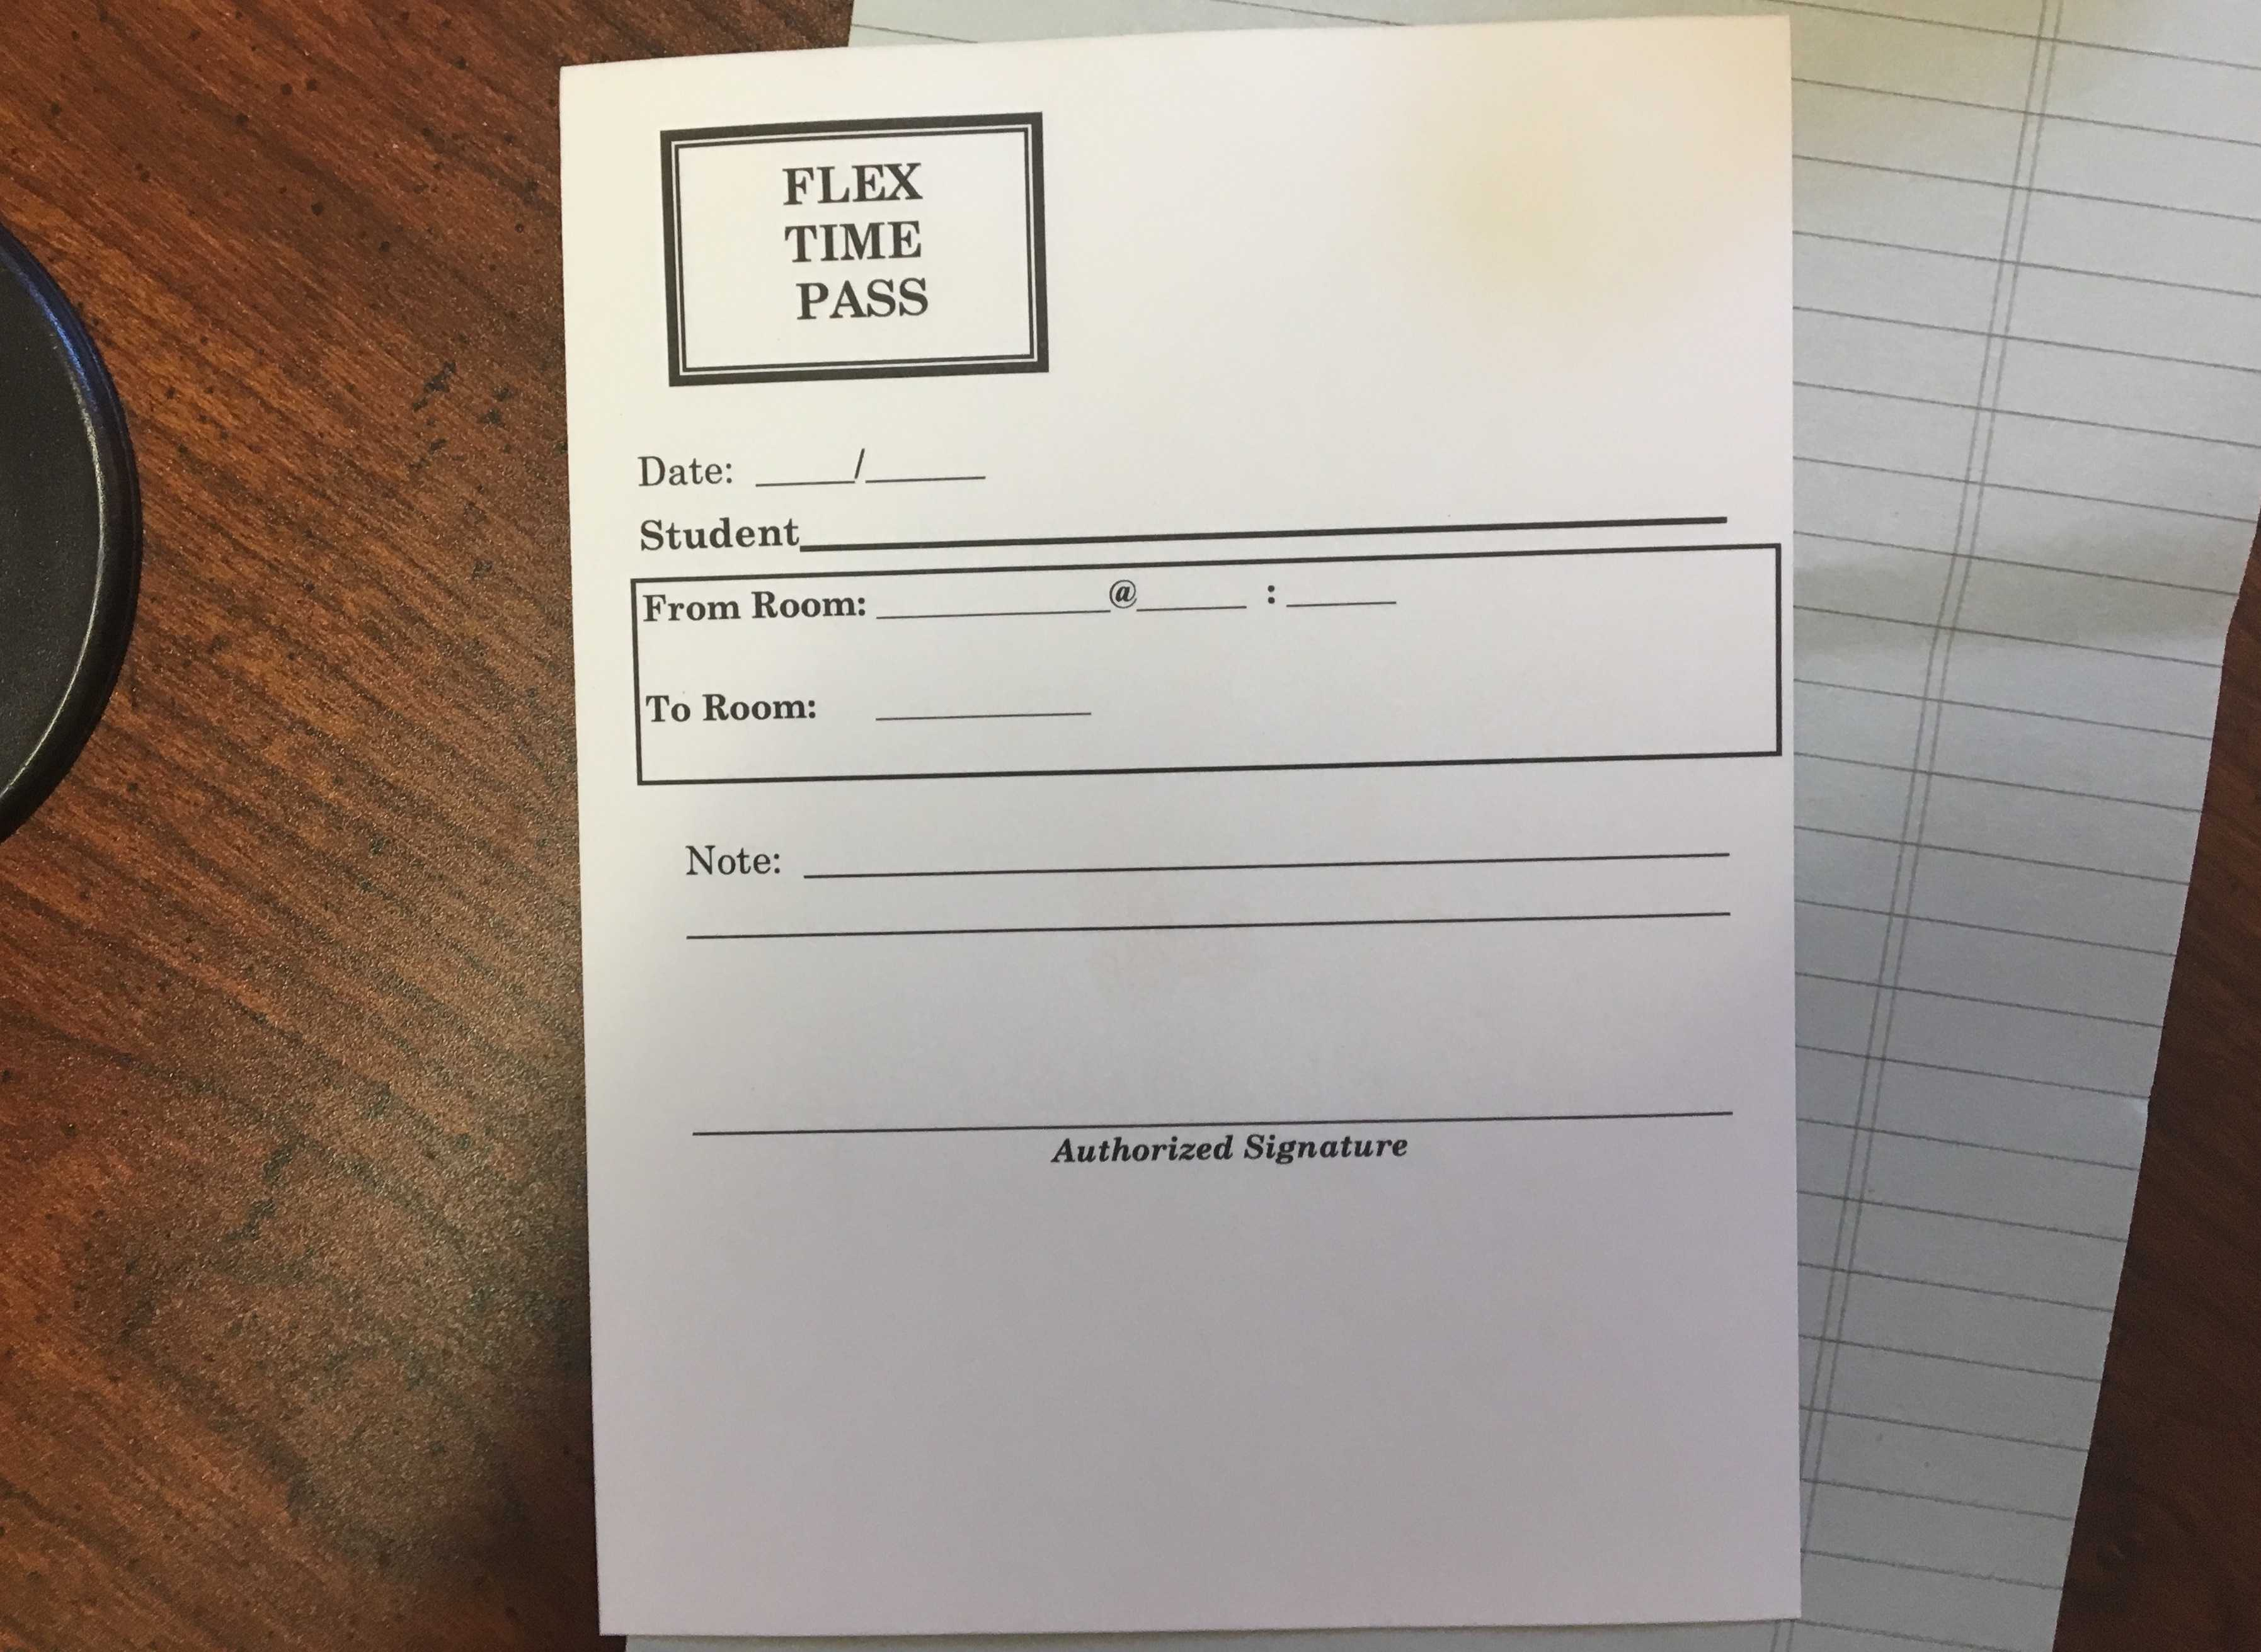 Paper passes like these will allow students to move on to different classrooms. The passes will serve as a temporary solution, and will soon be phased out once the ability to switch is integrated into the digitized system.